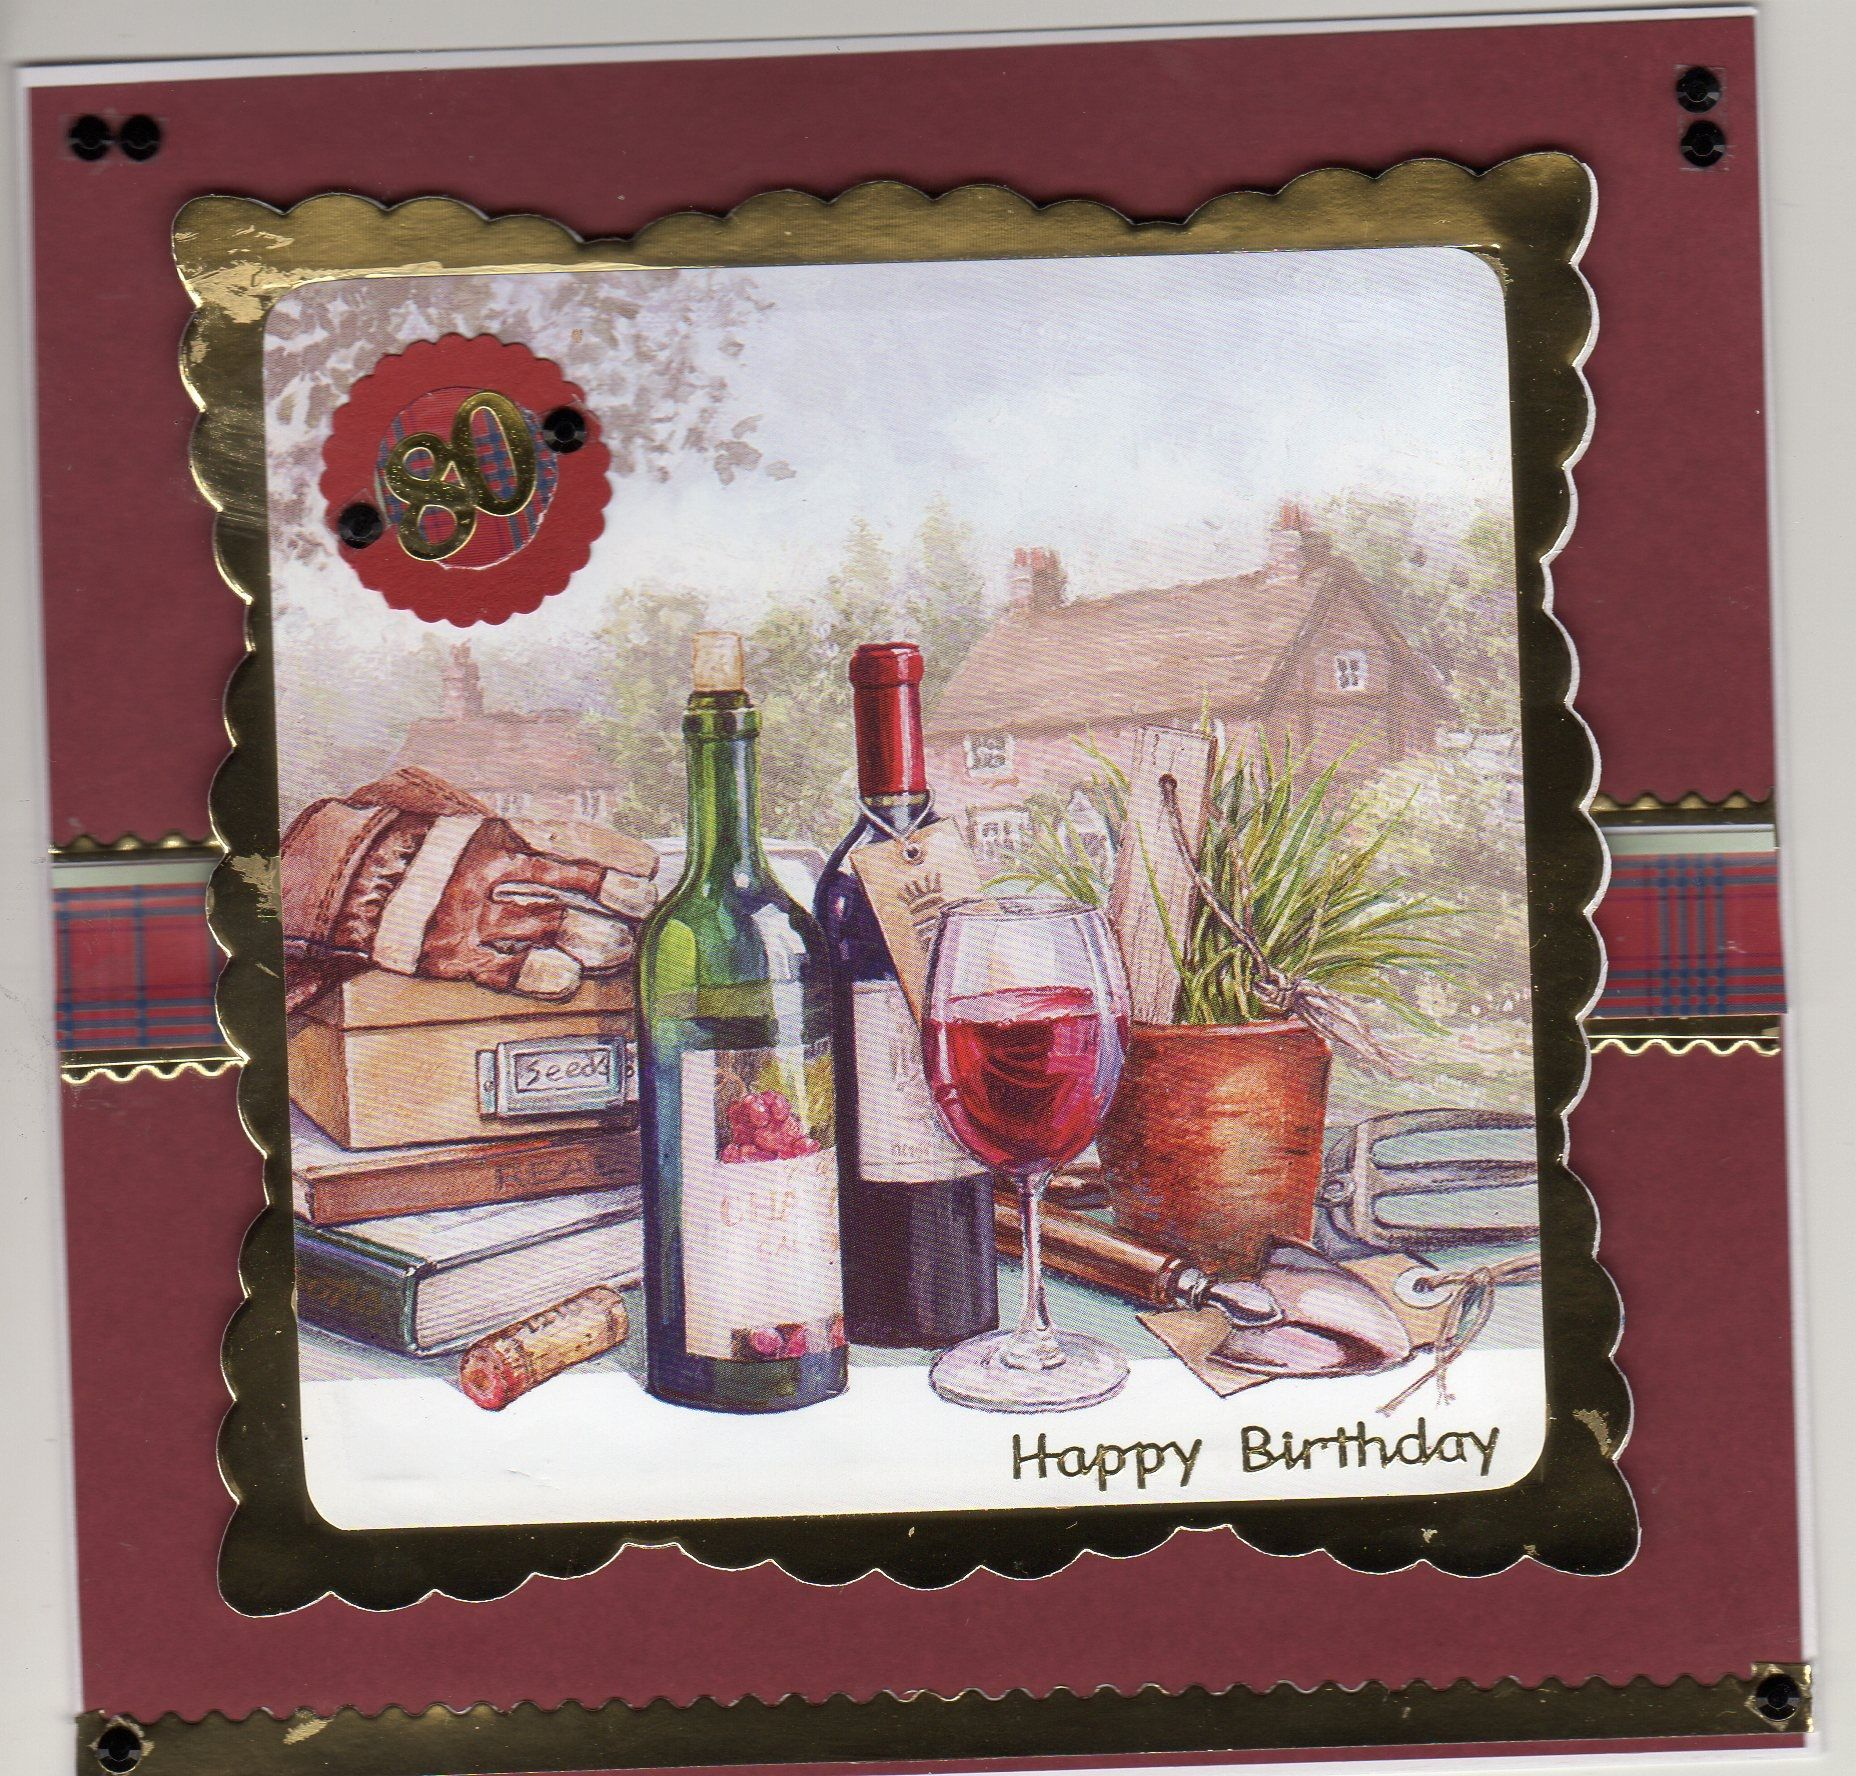 Hunkydory - from the little books. wine for 80th birthday.